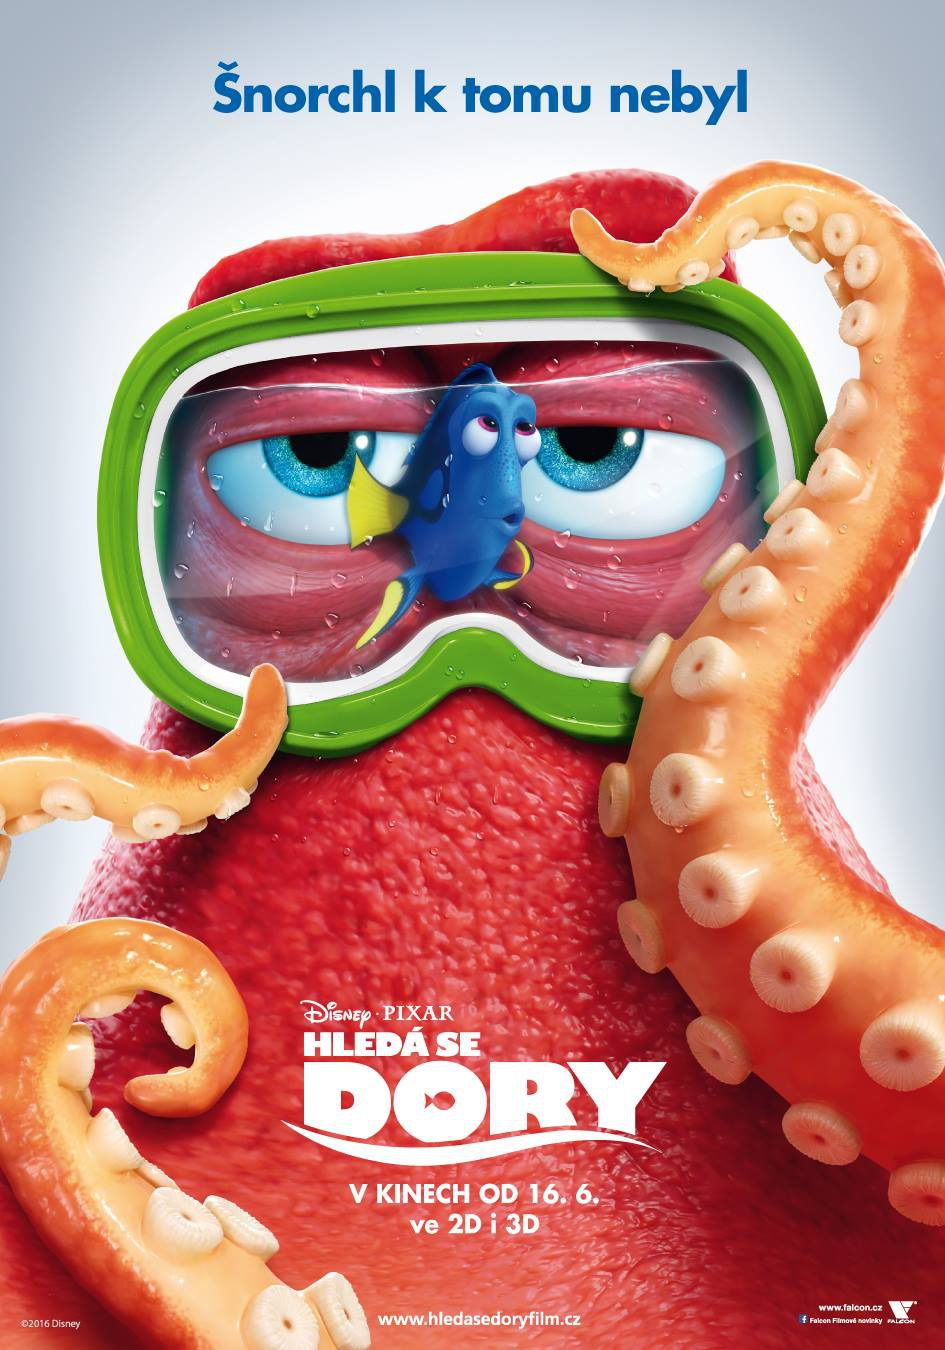 Finding Dory-XLG-19Maio2016 (4)